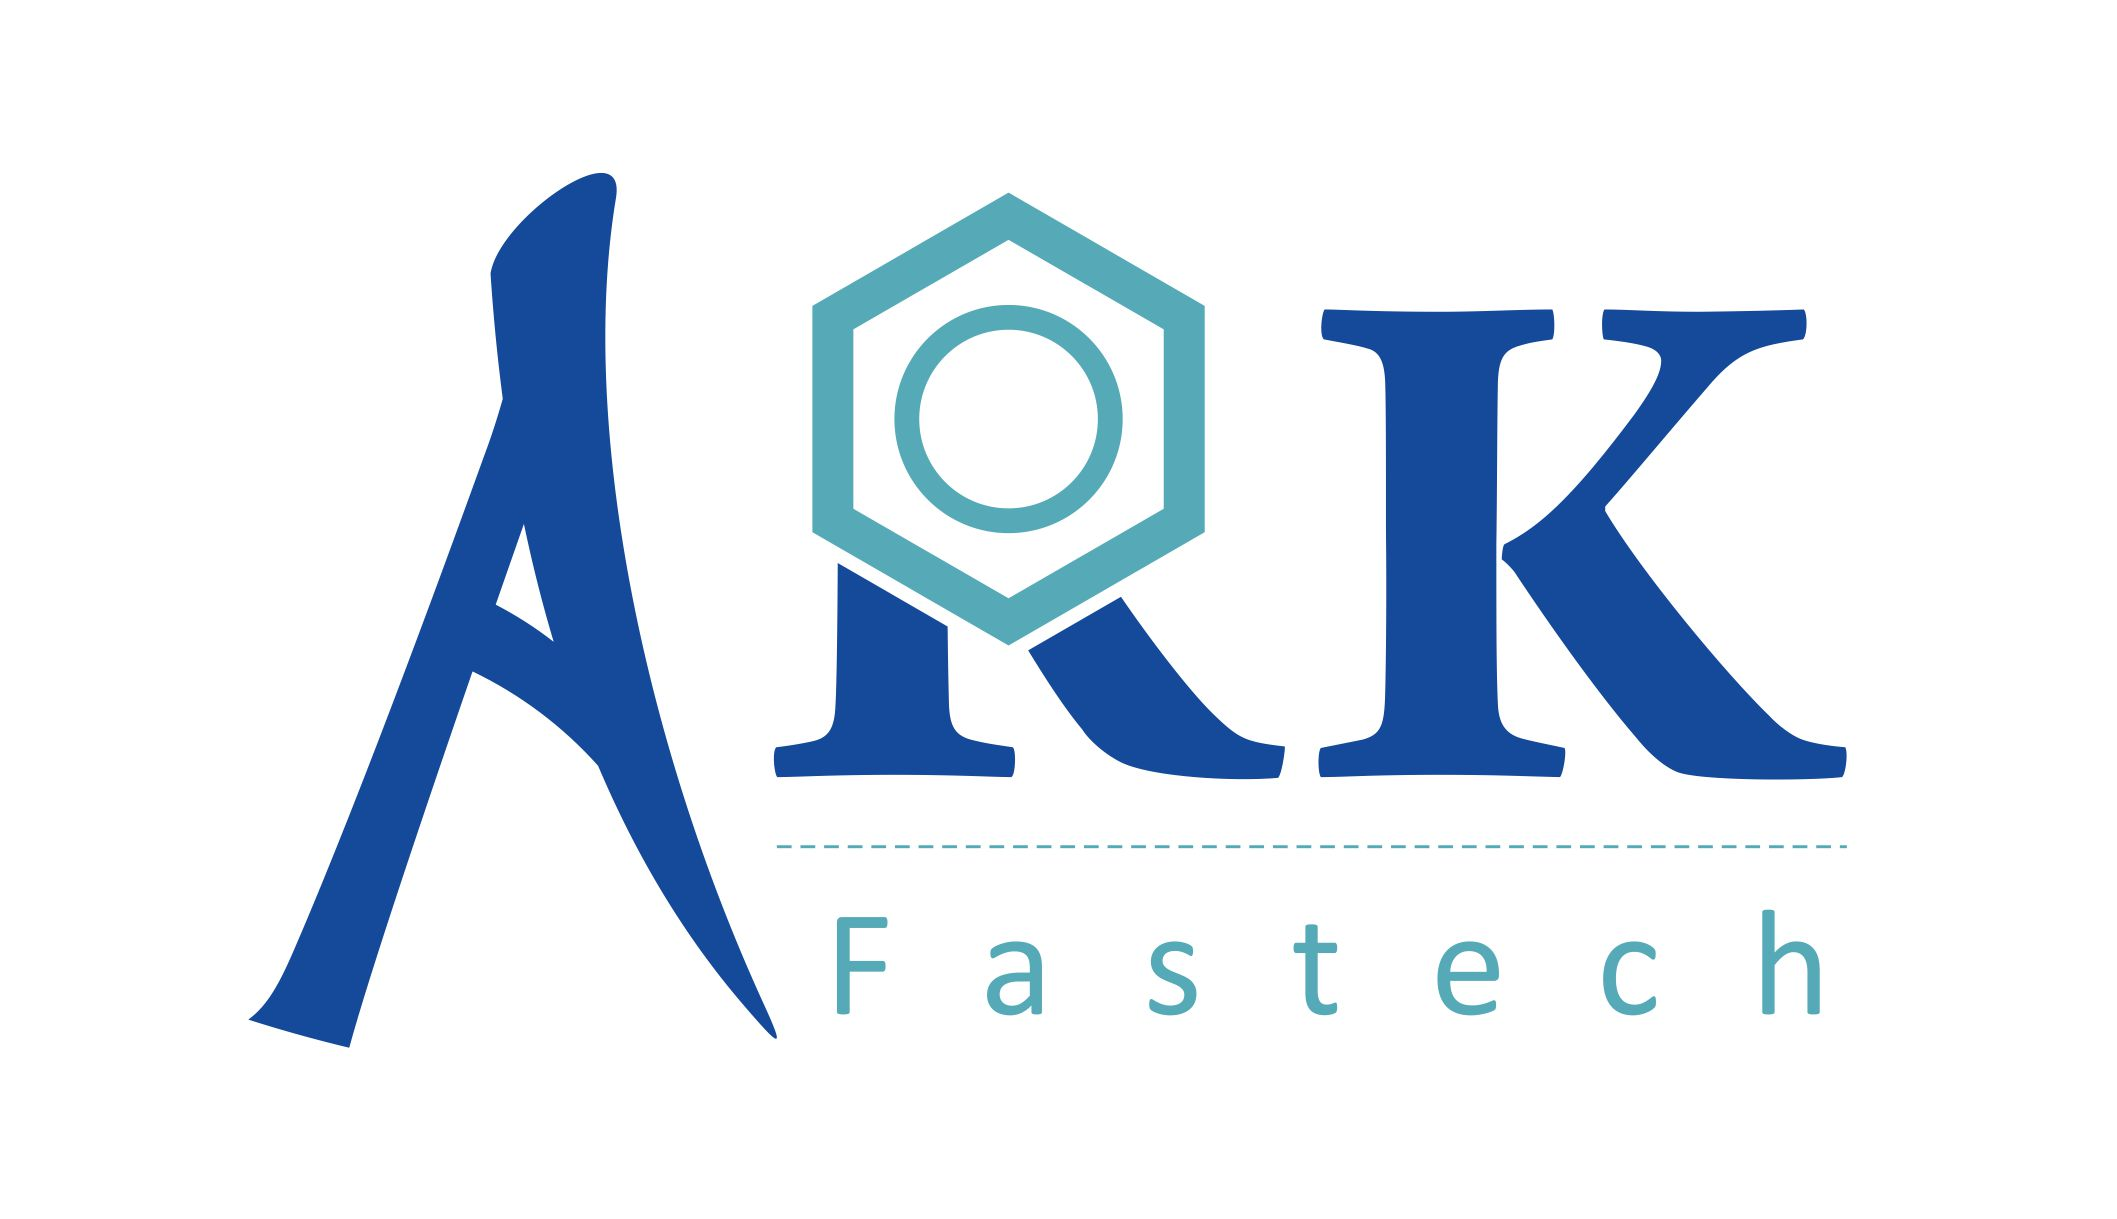 ARK FASTECH CORP.